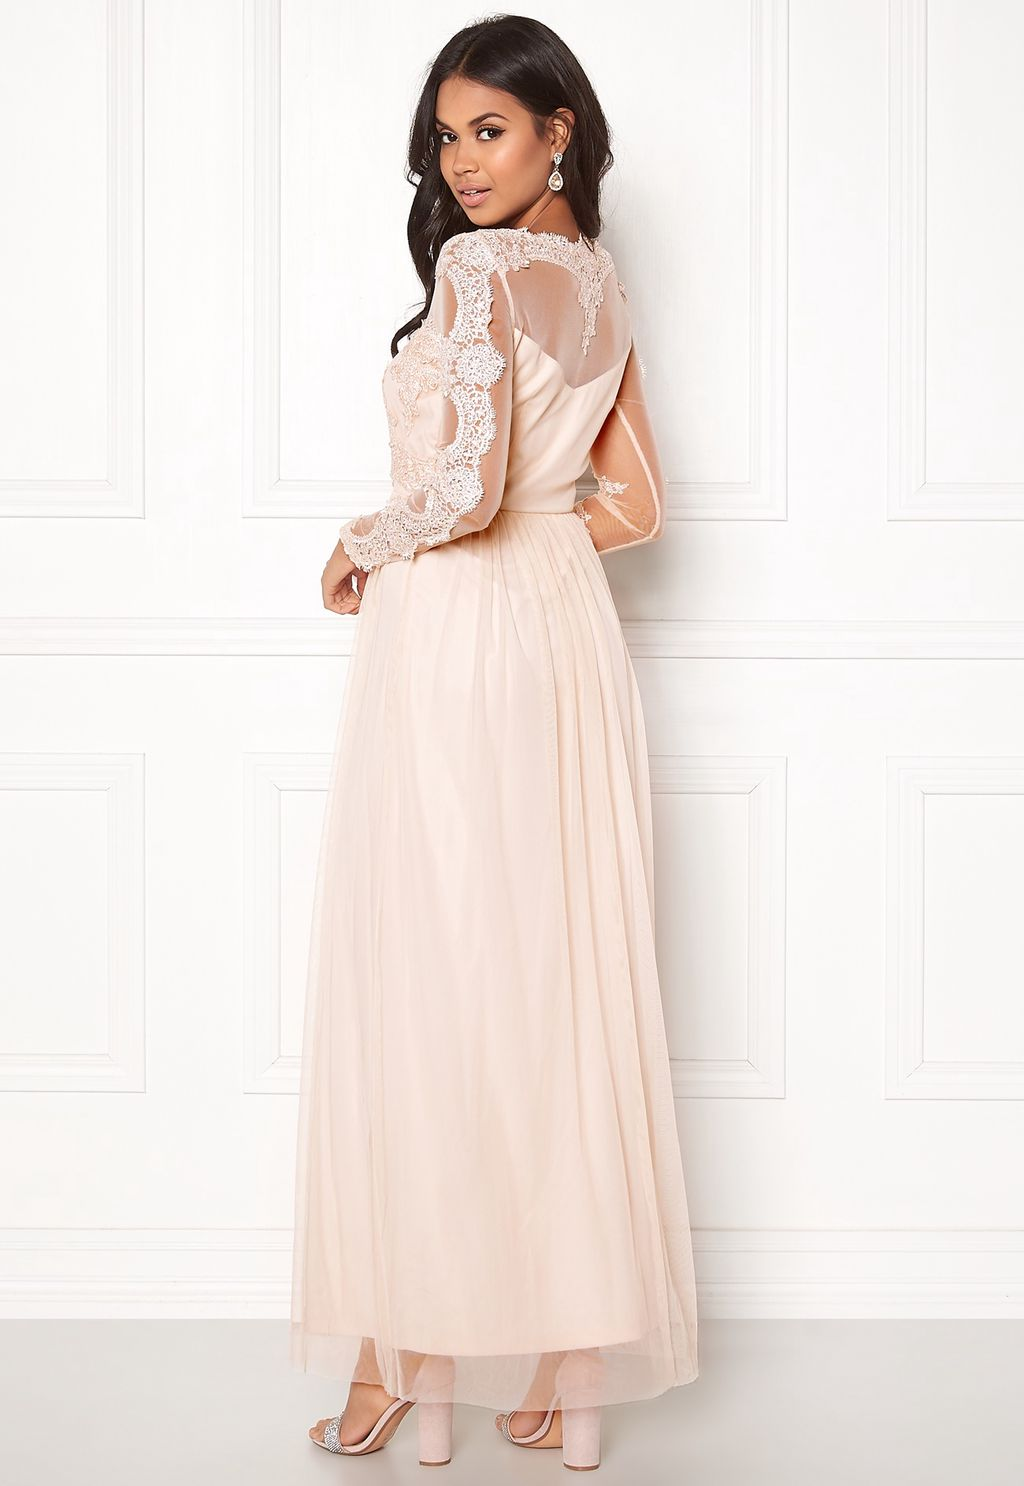 Georgious Maxi Dress Peach Blush - Bubbleroom  532736605f025